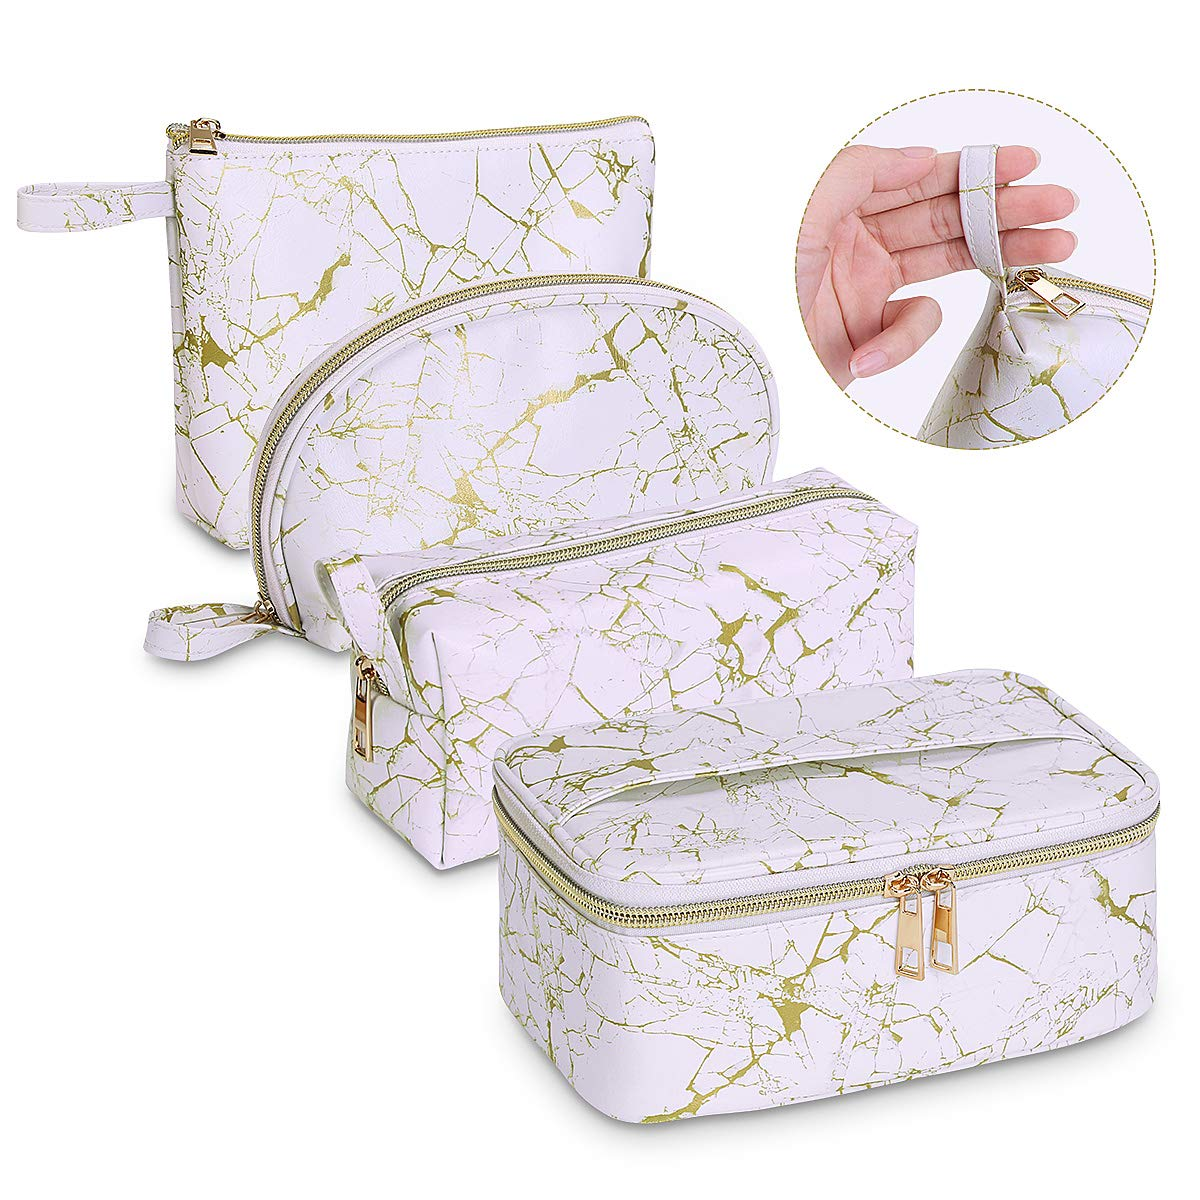 MAGEFY Makeup Bags- 4Pcs Portable Travel Cosmetic Bag Waterproof Organizer Multipurpose Case with Gold Zipper Toiletry Bags for Women Girls, Golden White Marble